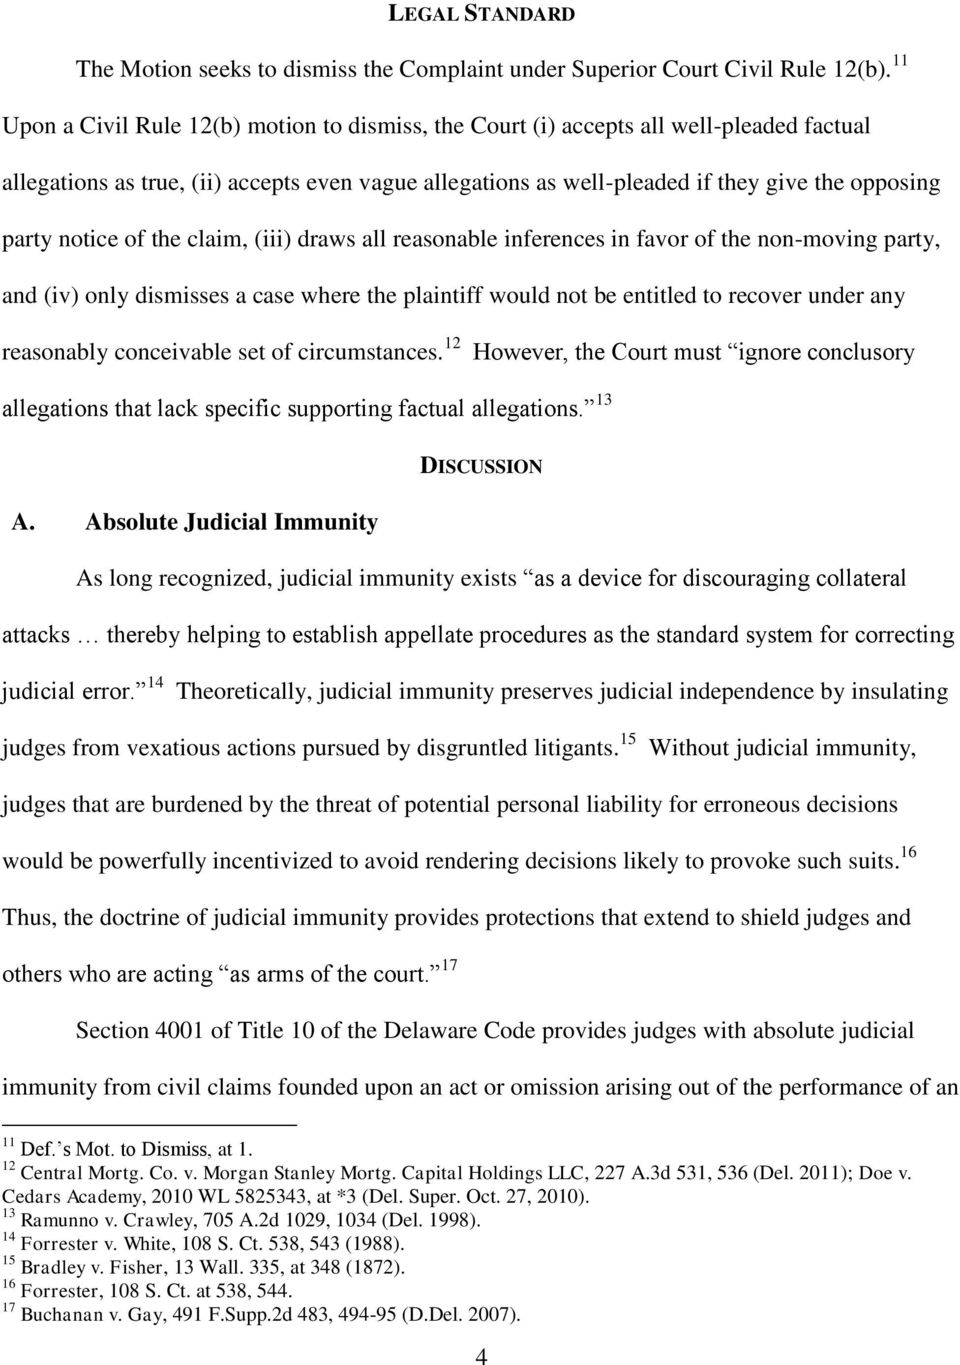 notice of the claim, (iii) draws all reasonable inferences in favor of the non-moving party, and (iv) only dismisses a case where the plaintiff would not be entitled to recover under any reasonably